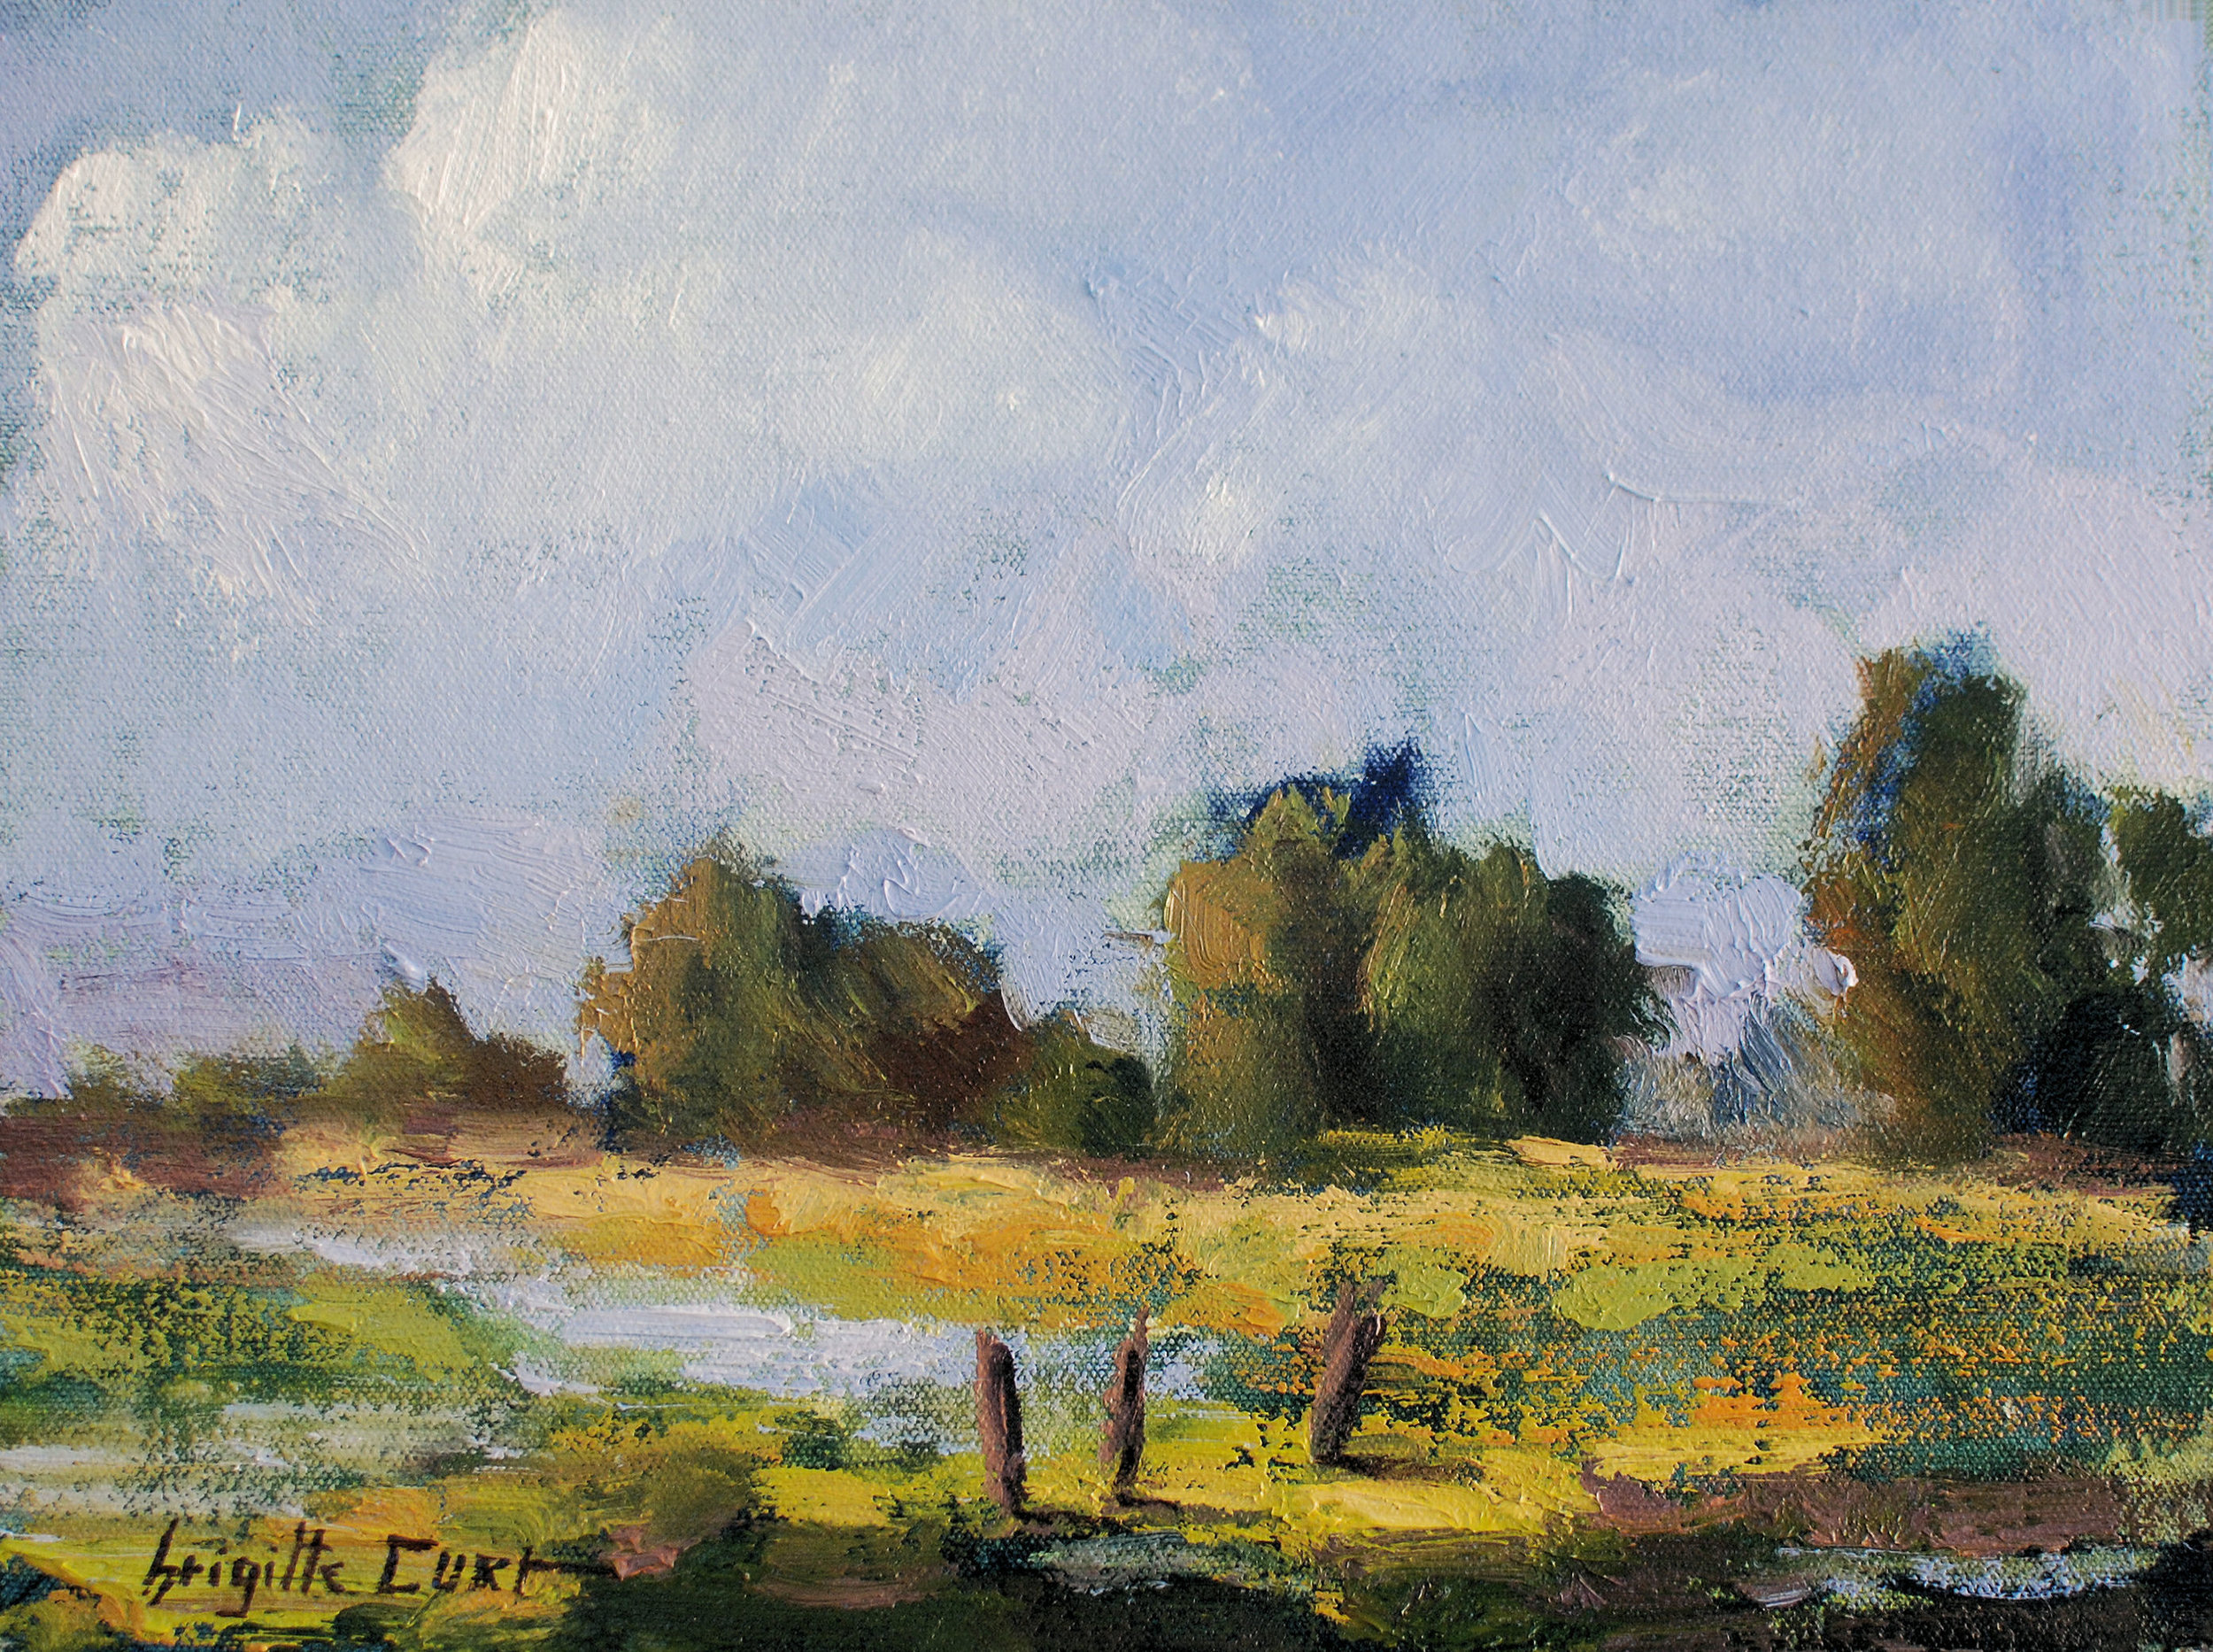 Fresh Morning Light 9 x 12 .jpg